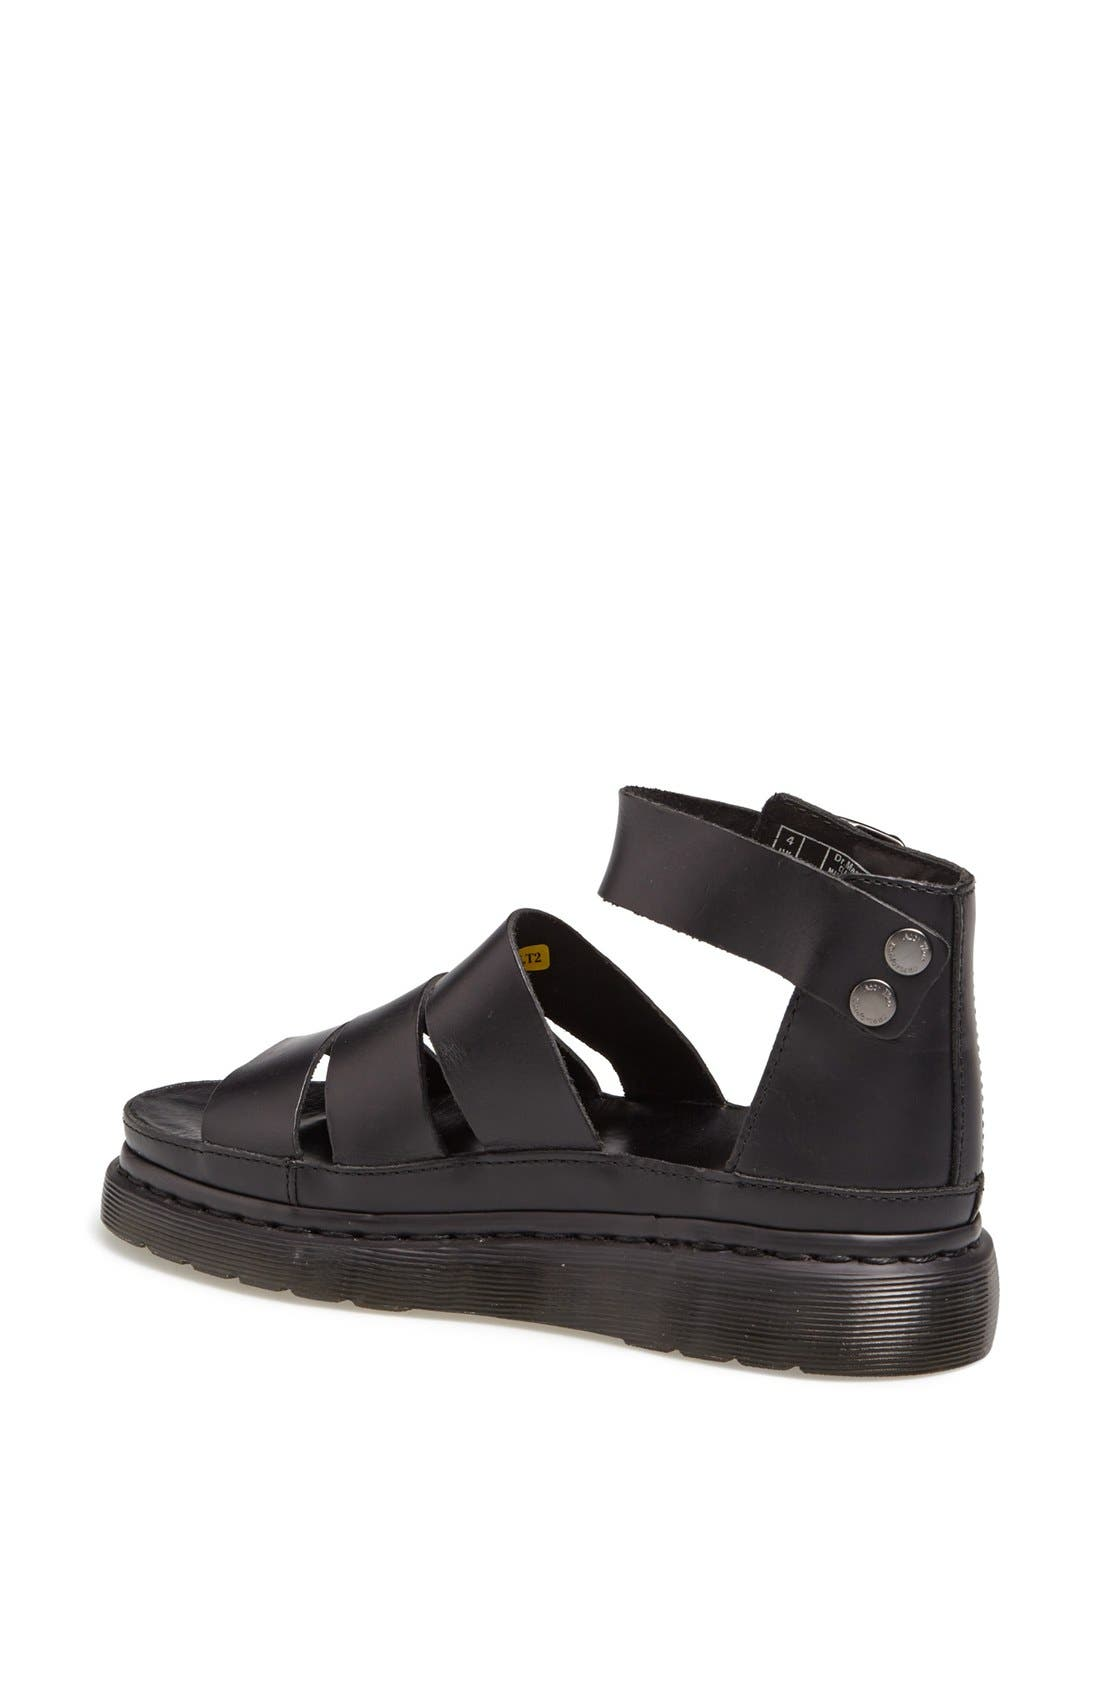 Alternate Image 2  - Dr. Martens 'Clarissa' Leather Sandal